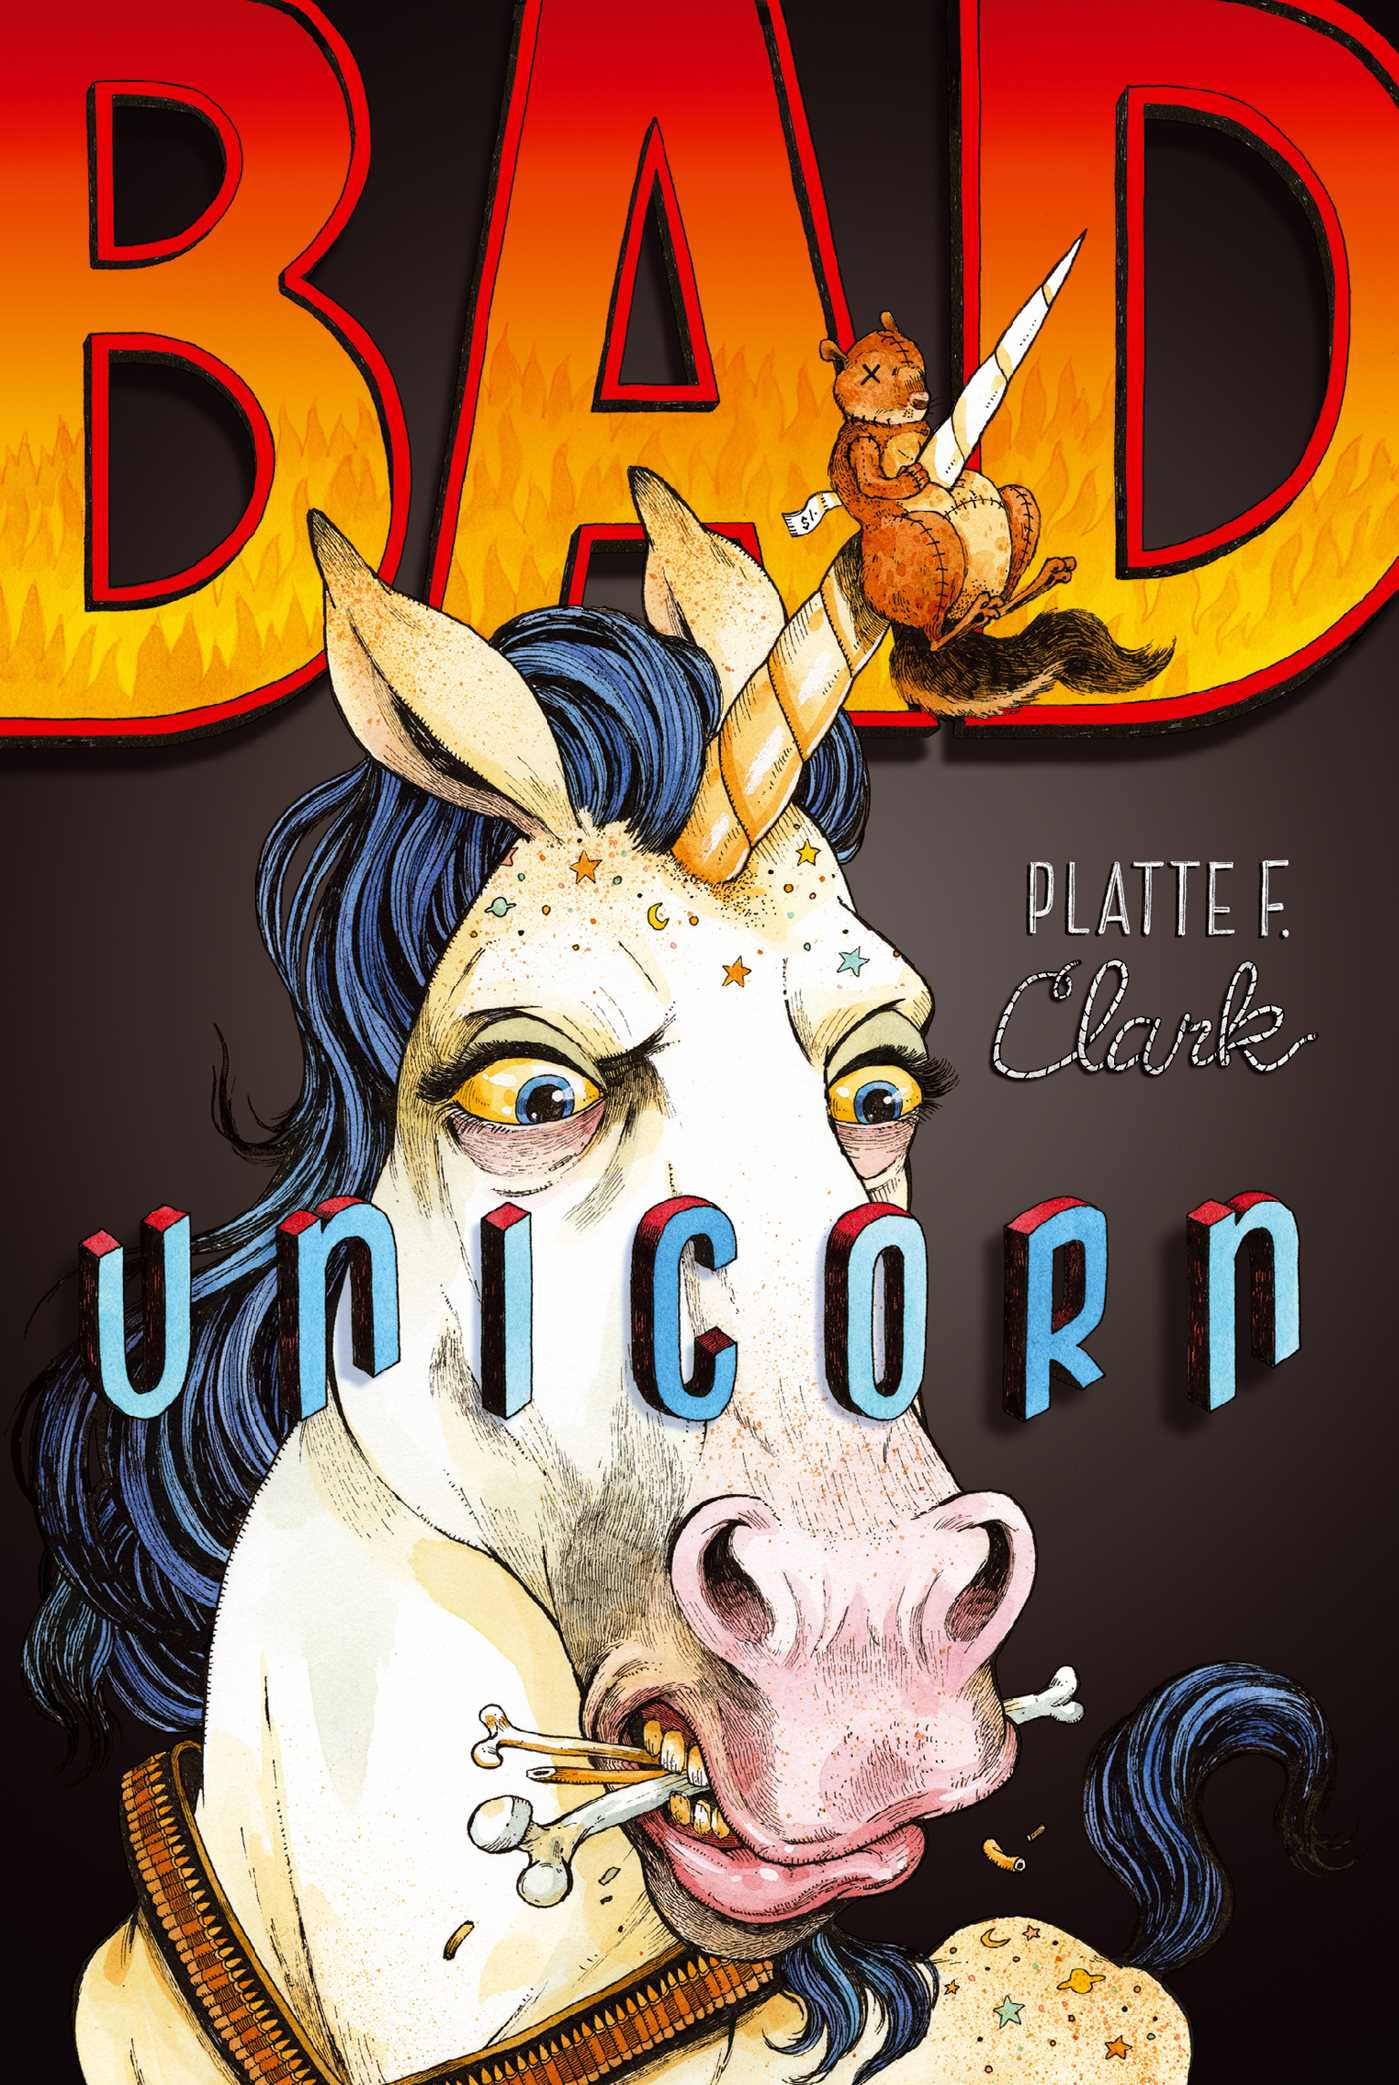 Bad-unicorn-9781442450134_hr